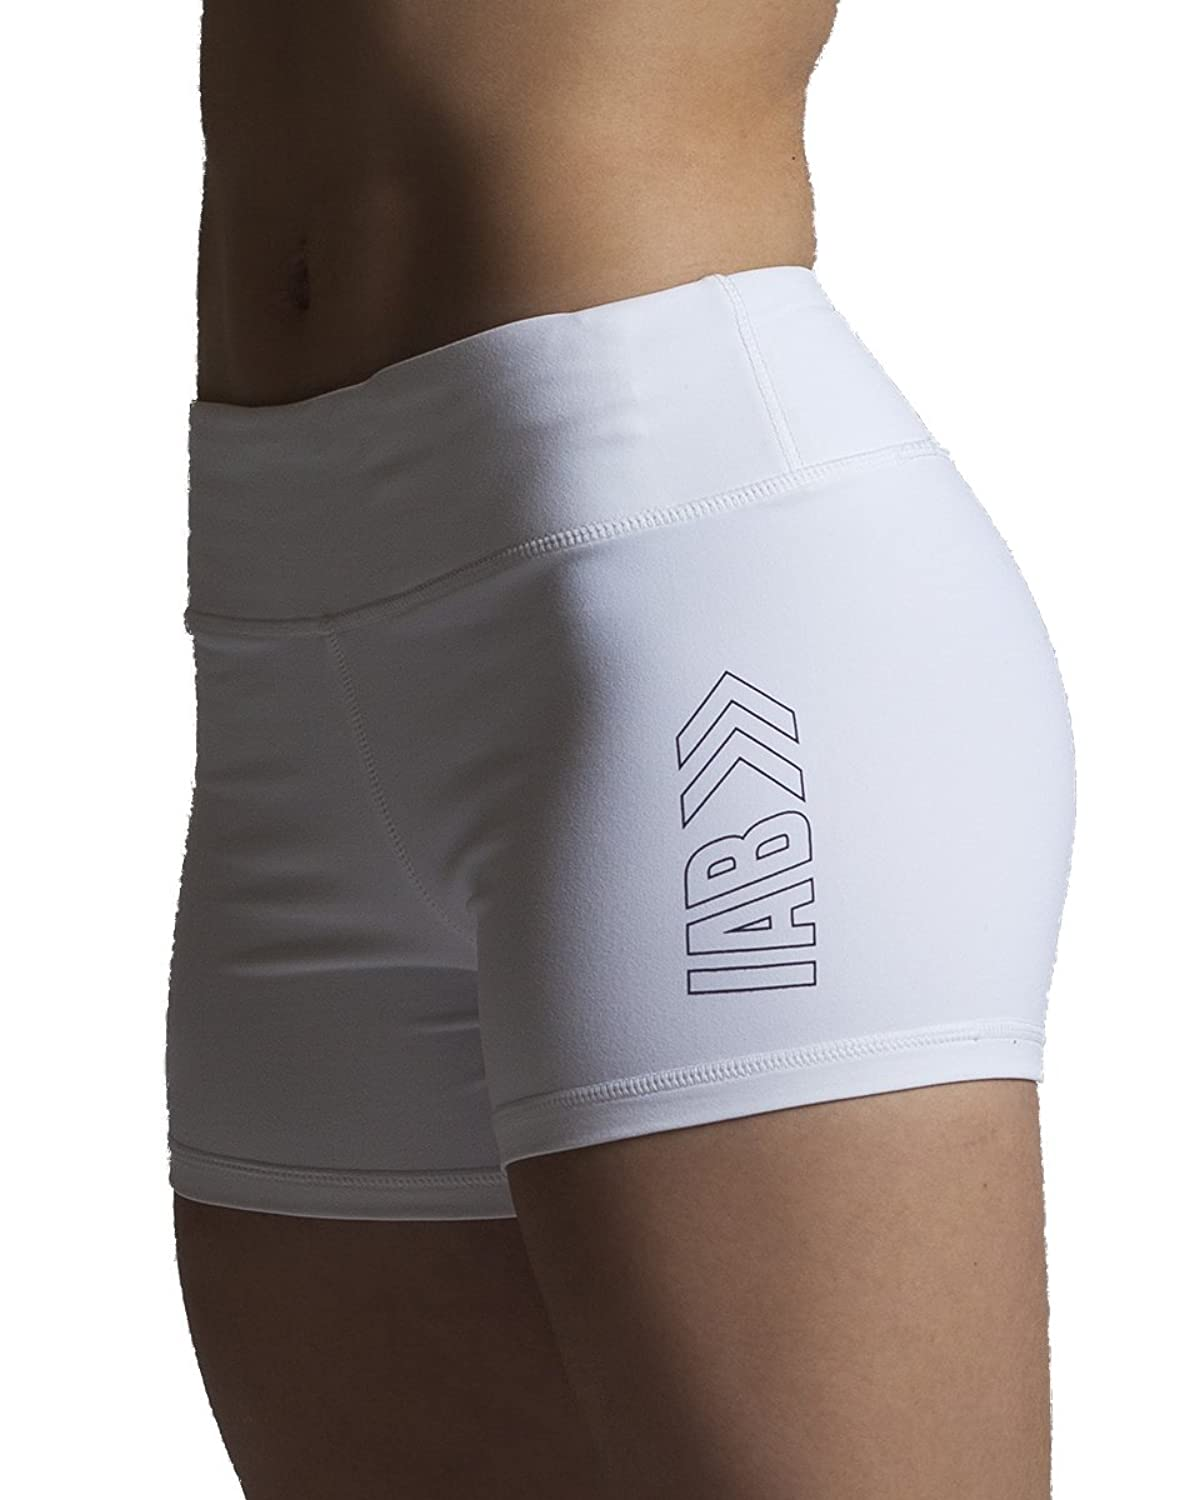 3 Inch Compression Shorts